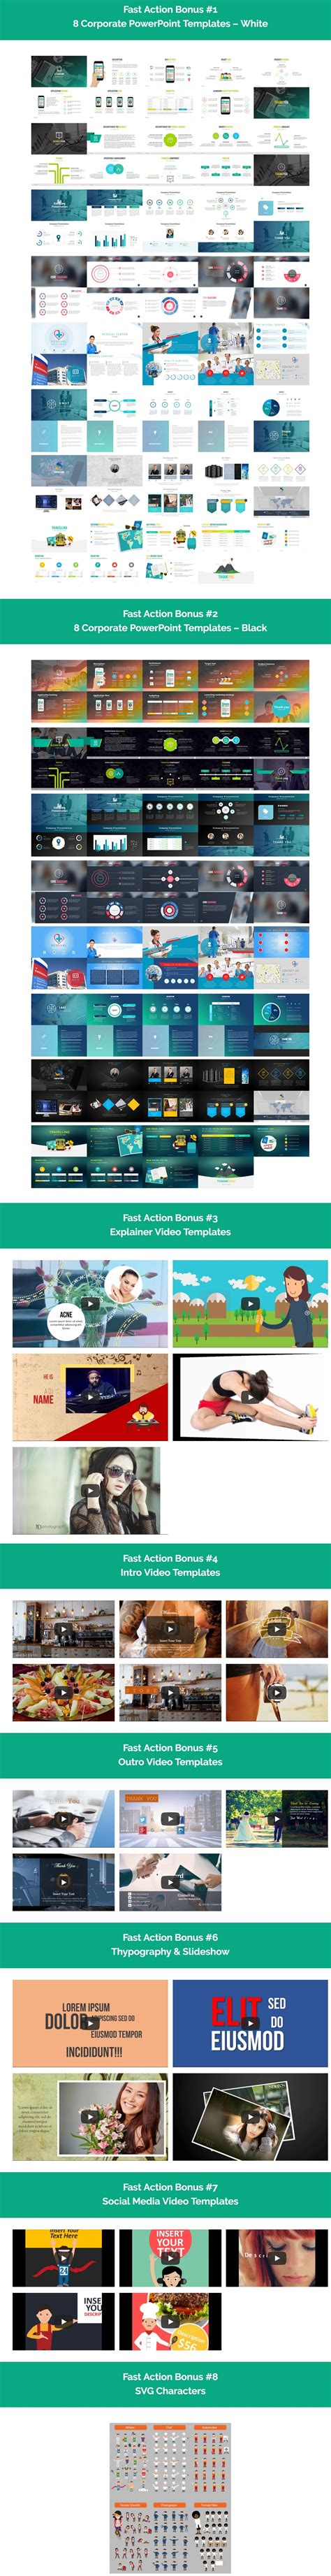 canvas conversion kit canvas conversion kit review bring your brand and product